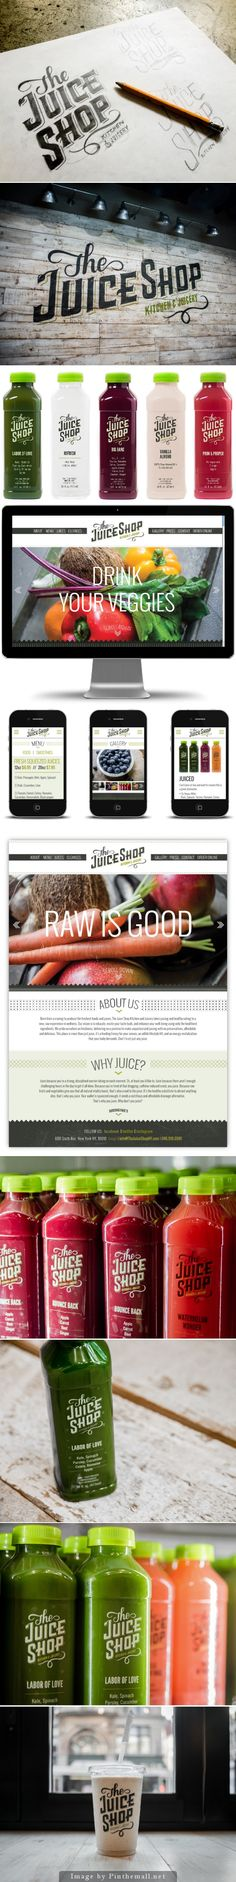 The Juice Shop branding